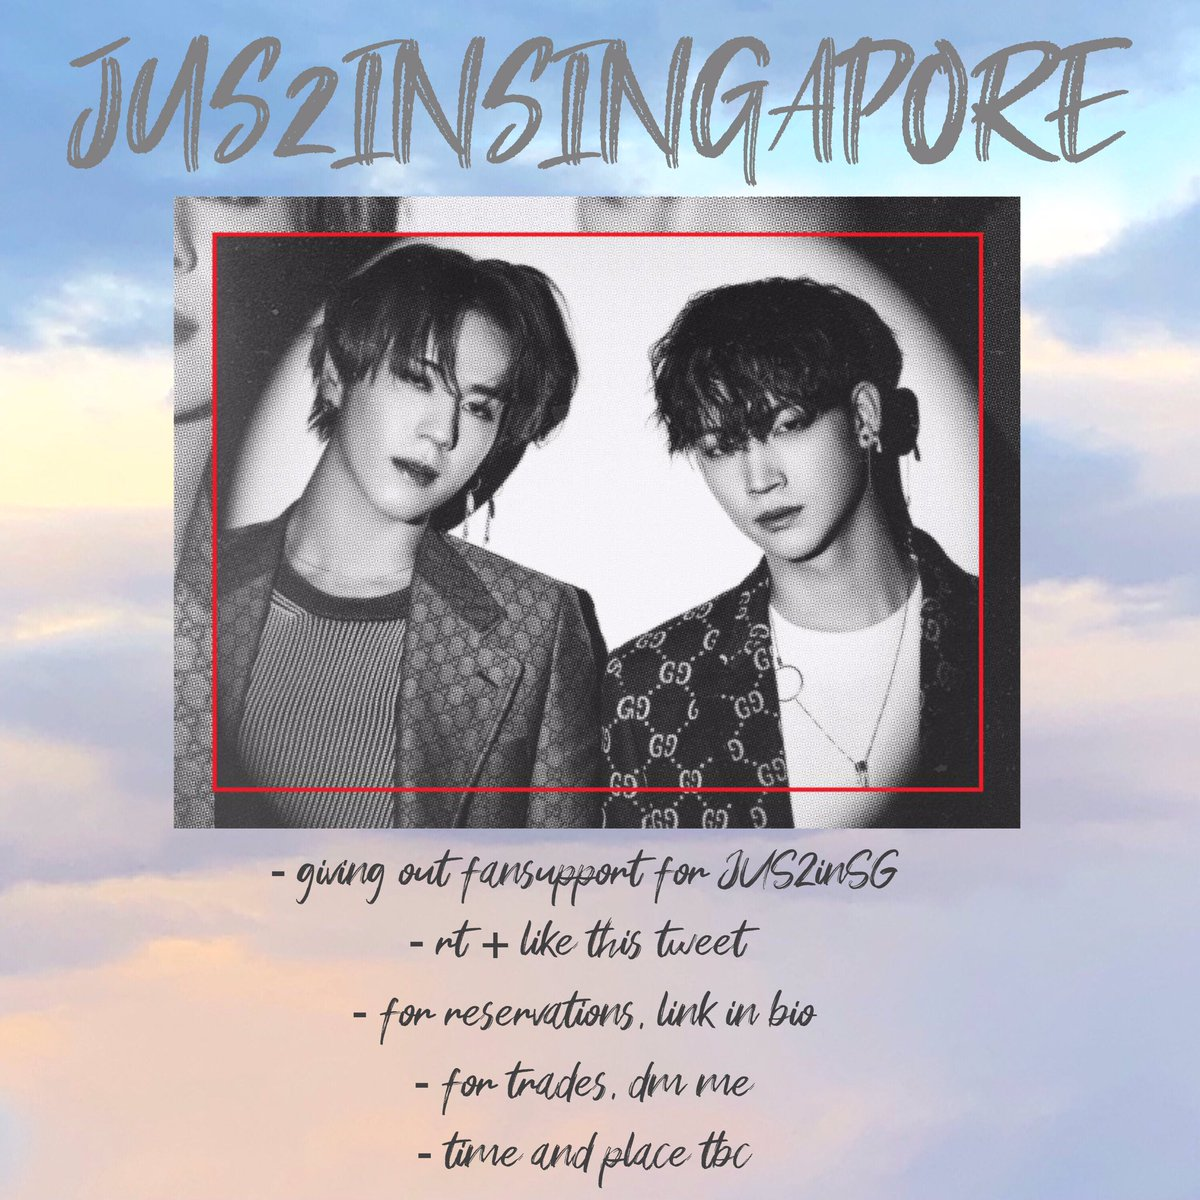 [RT JUS2 IN SG]  the , the , and you    fansupport for  #JUS2inSINGAPORE #JUS2inSG #Jus2_FOCUSTOURinSG    dm for trades!!   reservations:   https:// forms.gle/CWWTkUEDZsPbx4 Ly8   …    check picture for more deets!!   COME AND GET IT   ** will release pictures for PCs soon!<br>http://pic.twitter.com/KfSLdlGhA8